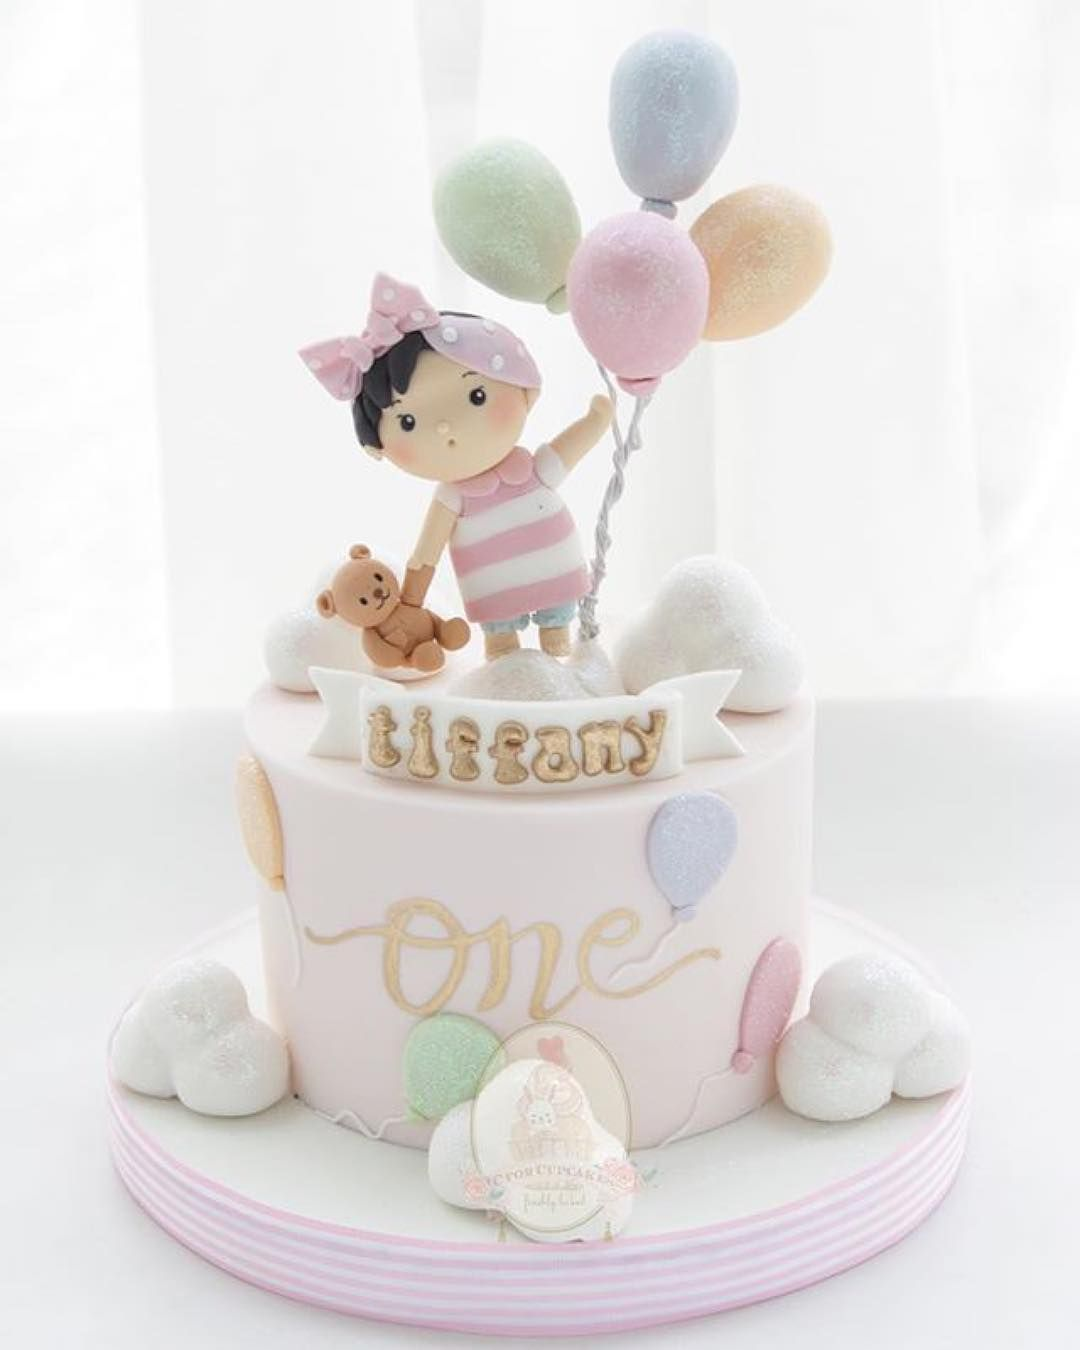 Strange First Birthday Balloon Cake With Images Baby Birthday Cakes Funny Birthday Cards Online Alyptdamsfinfo